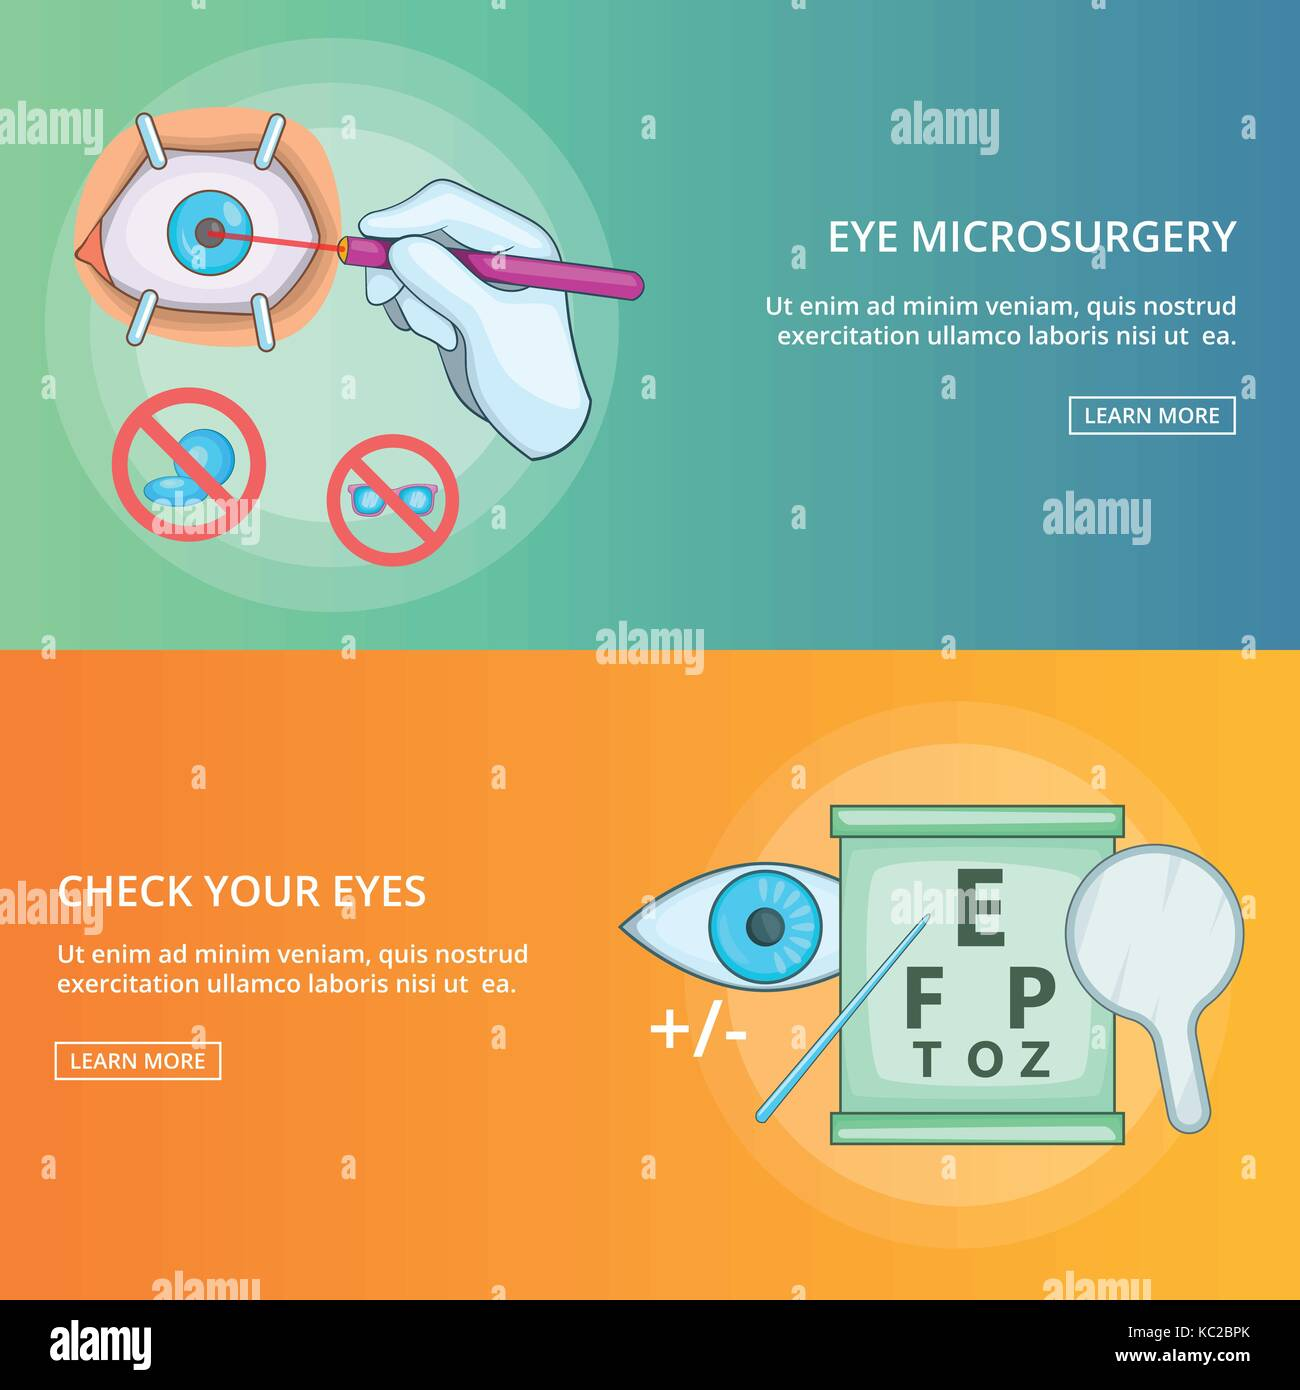 hight resolution of eye microsurgery banner set template cartoon style stock vector